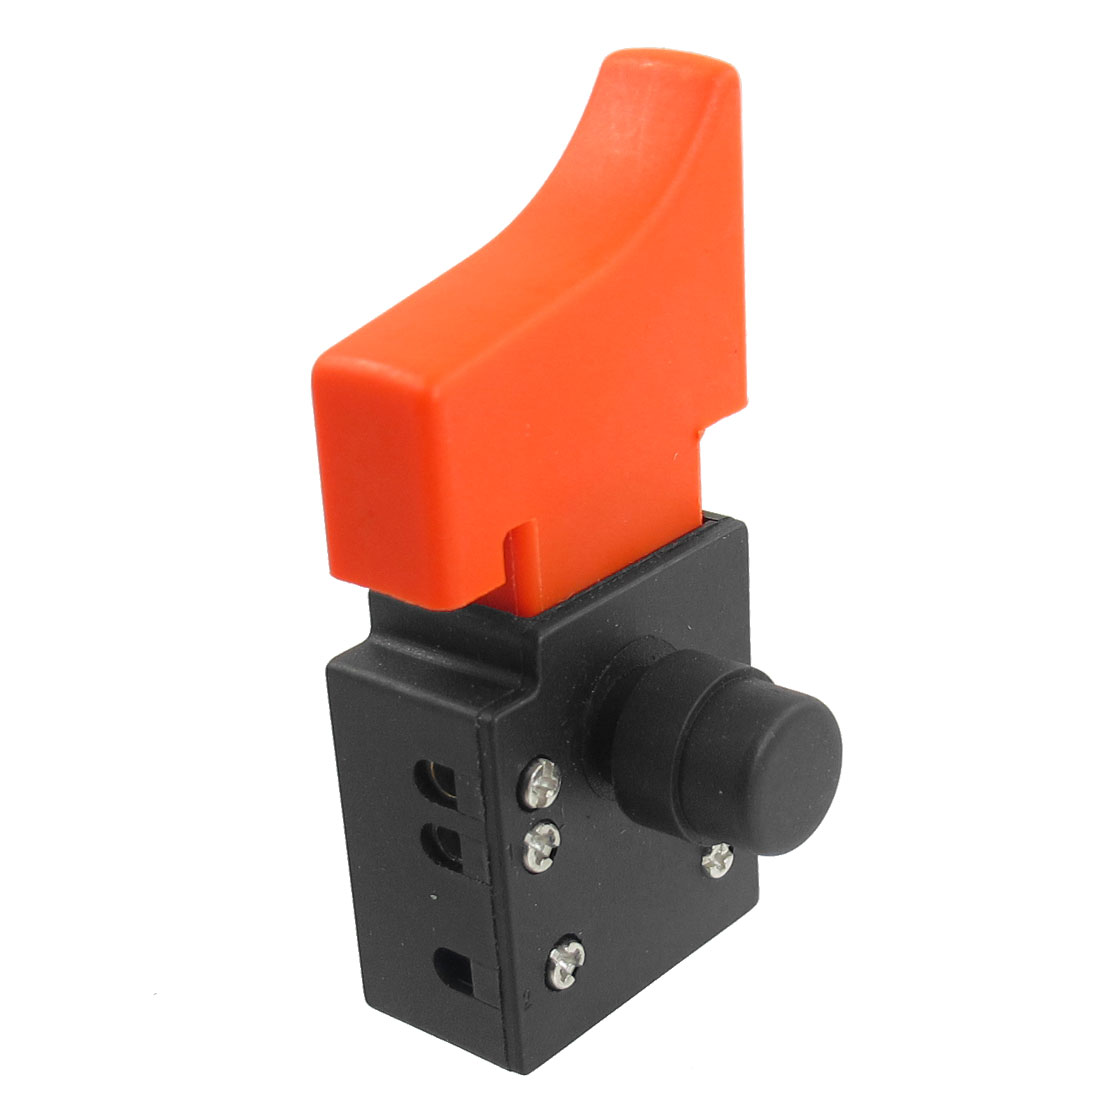 Angle Grinder Control DPST Momentary Trigger Switch AC 250V 6A for VivaKi 150